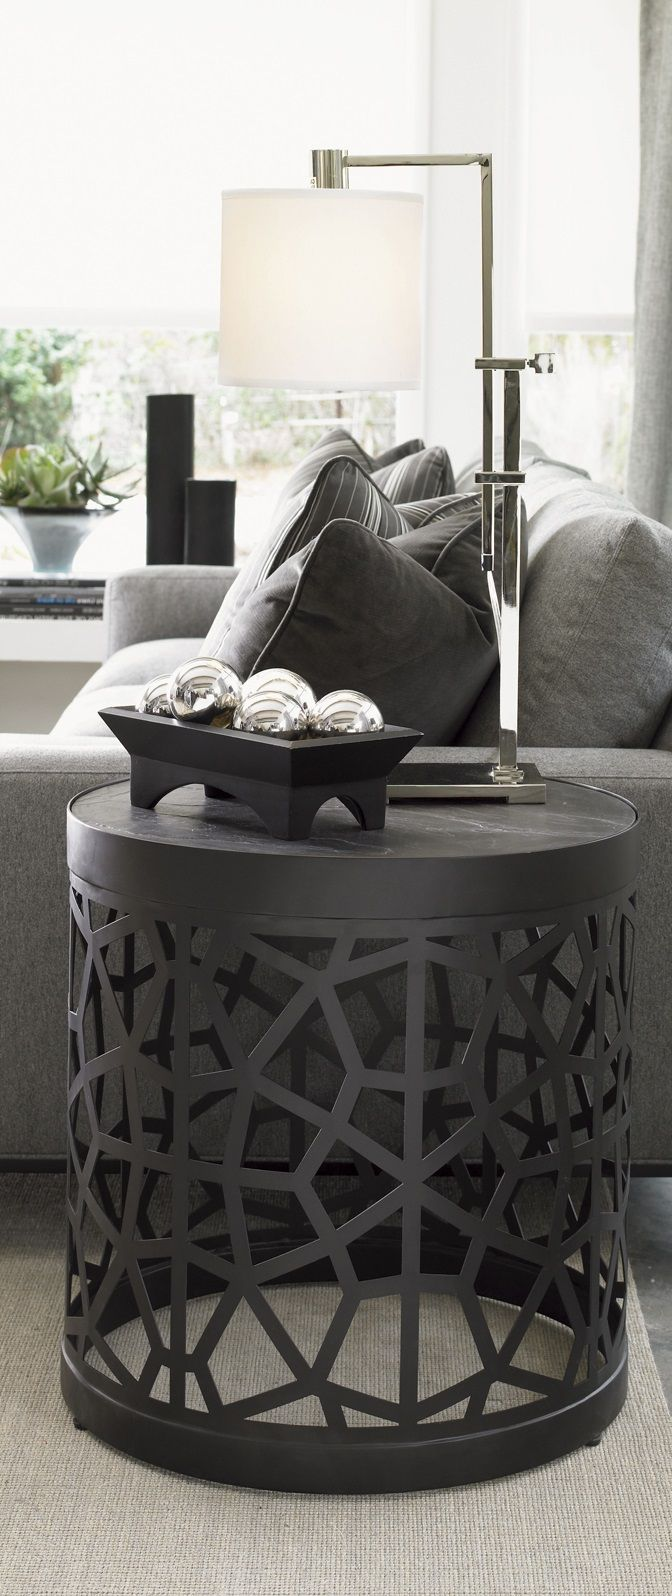 """side tables"" ""accent tables"" ""end tables"" #interiordesign #casegoodsideas moder home decor, interior design ideas, casegood inspirations. See more at http://www.brabbu.com/en/inspiration-and-ideas/category/trends/interior"